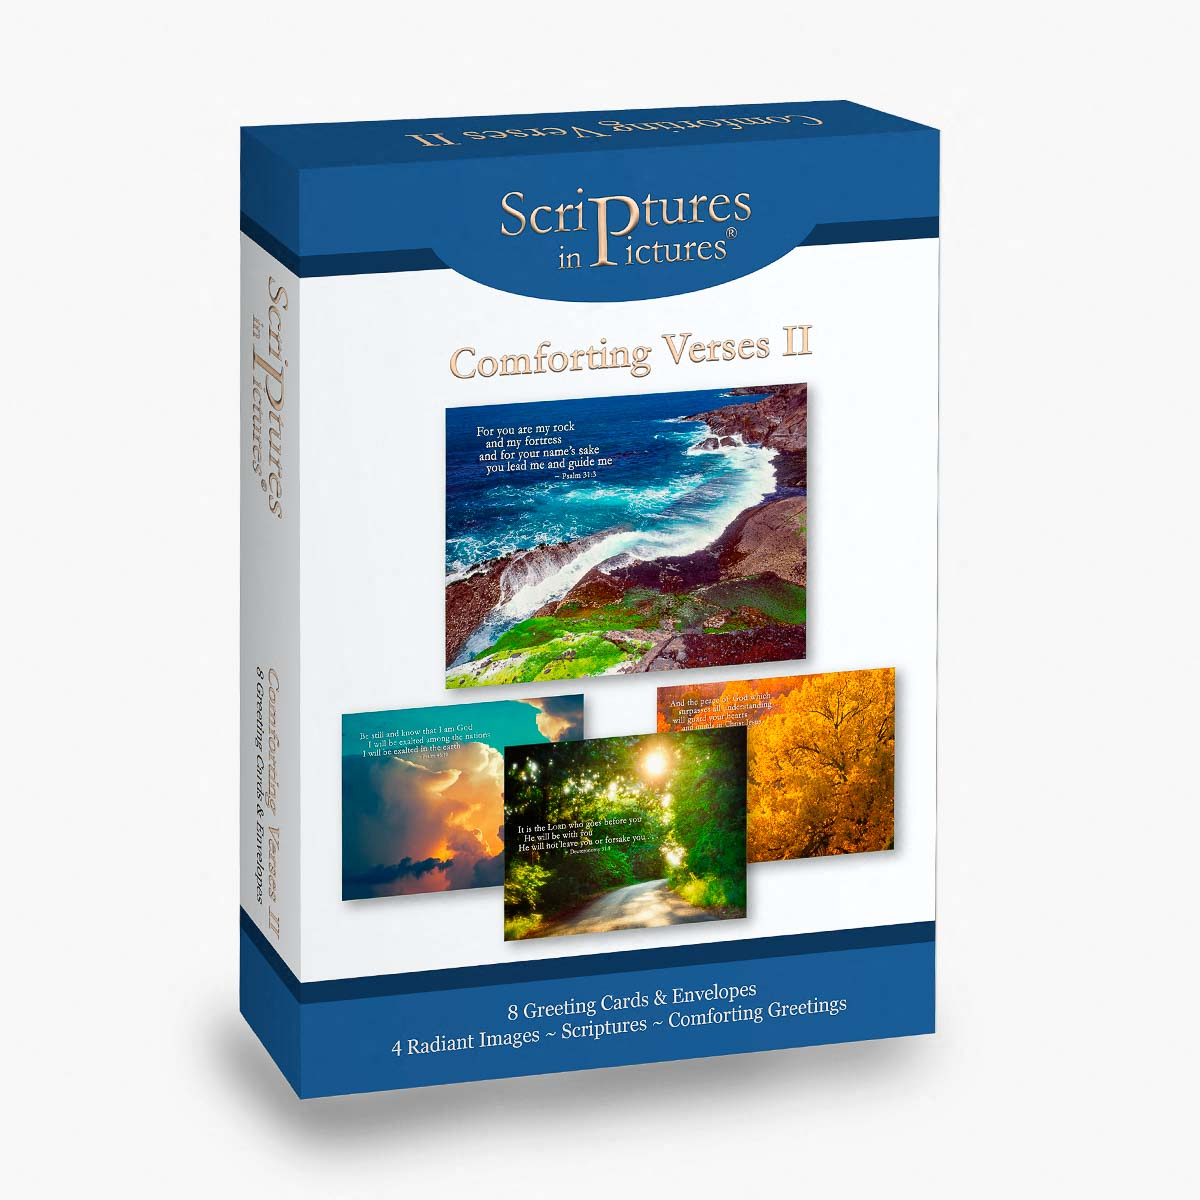 Scriptures in Pictures Comforting Verses II Greeting Cards